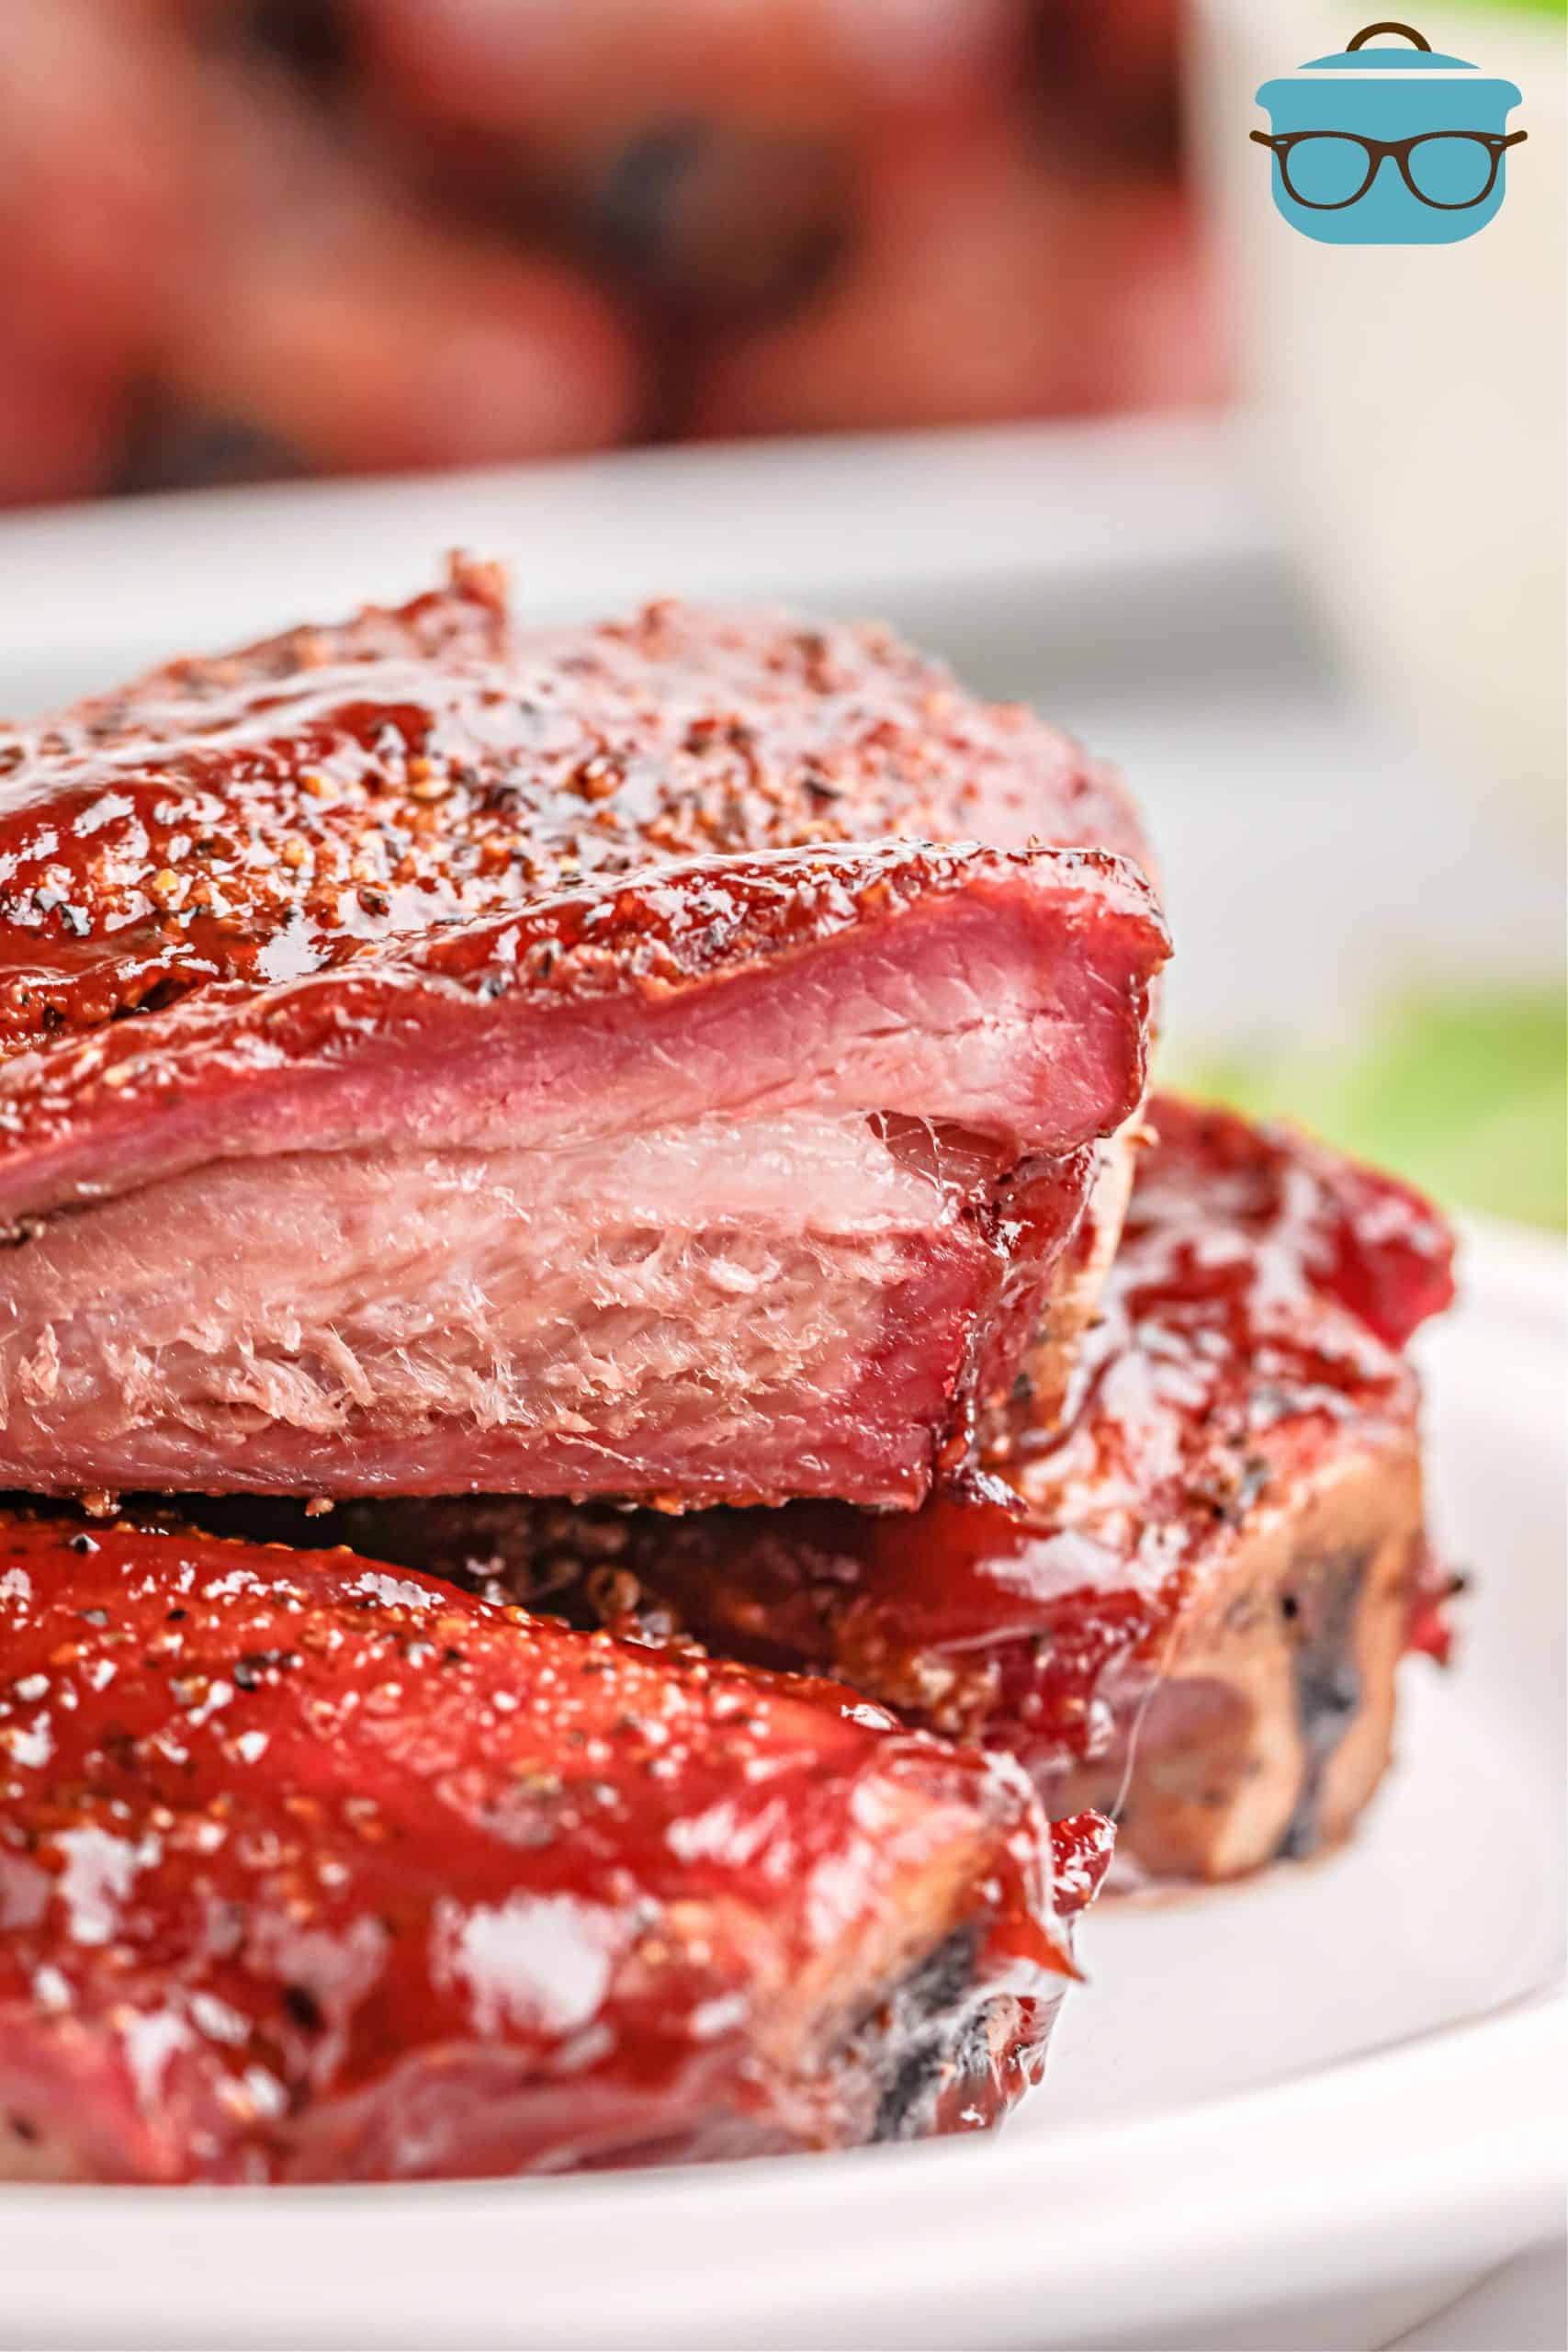 Close up of Ribs stacked on plate showing smoke ring.